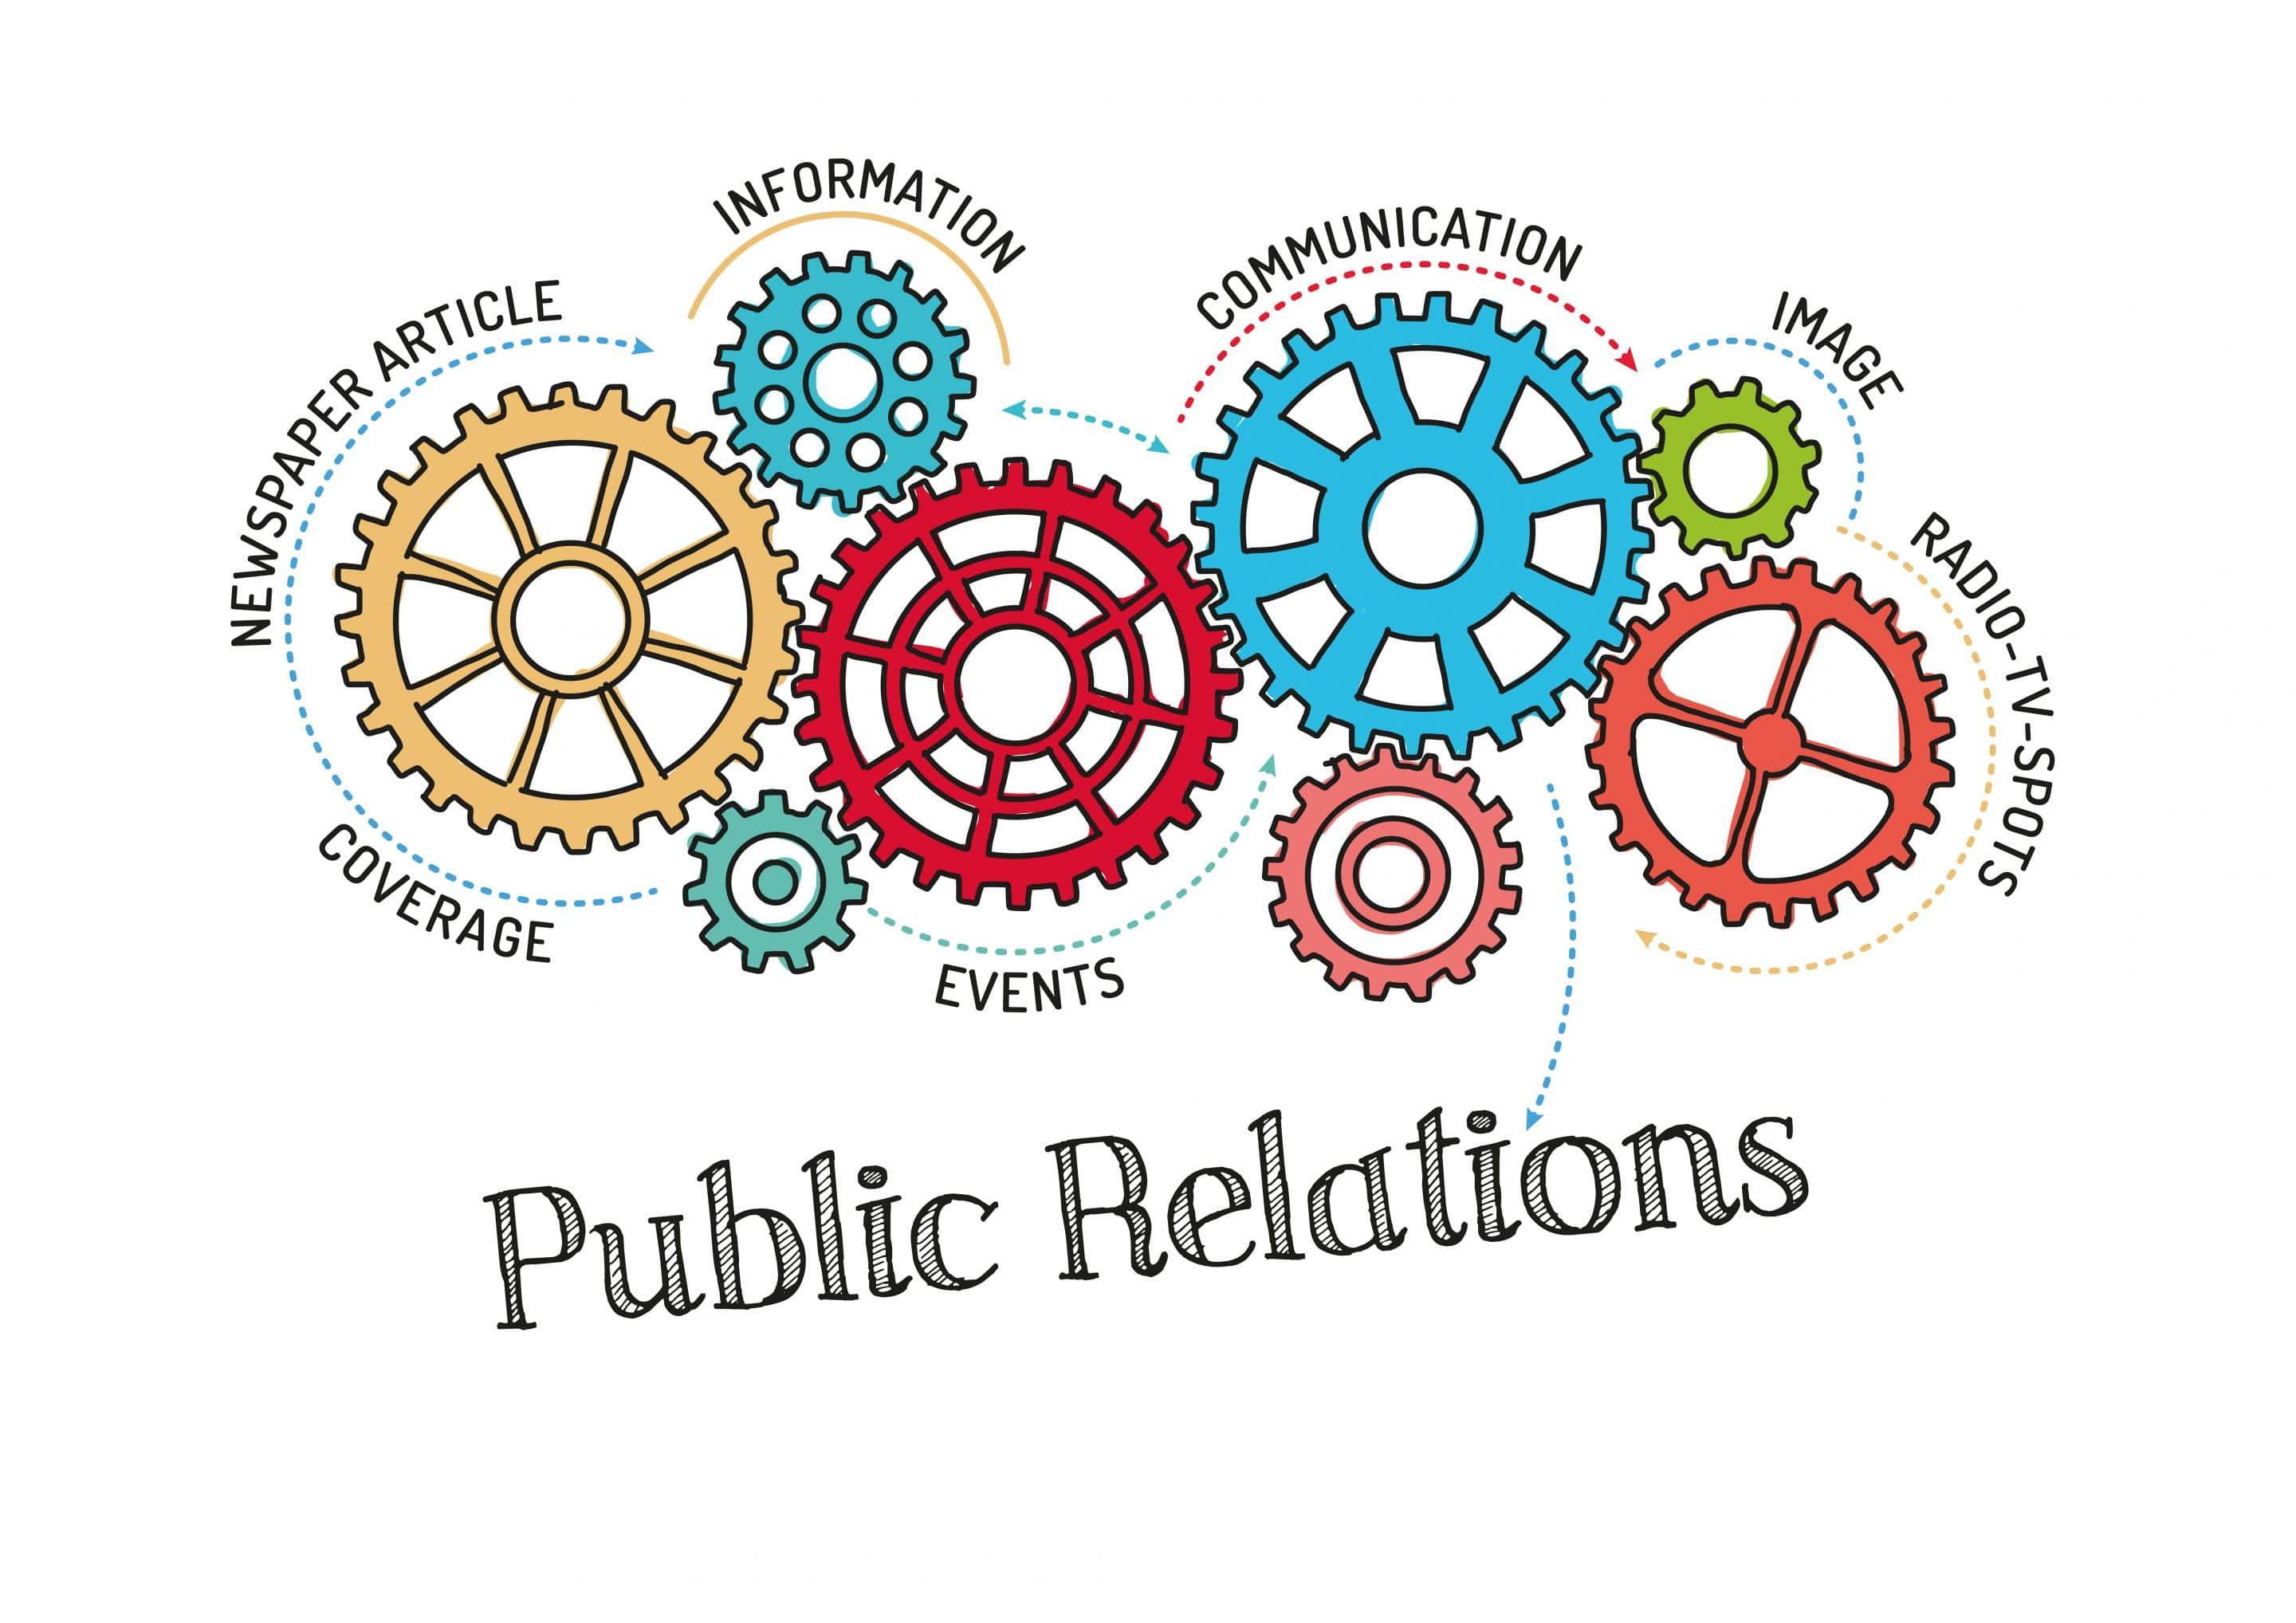 8 Tools for Public Relations: Releases, Pitches, Advisories & More